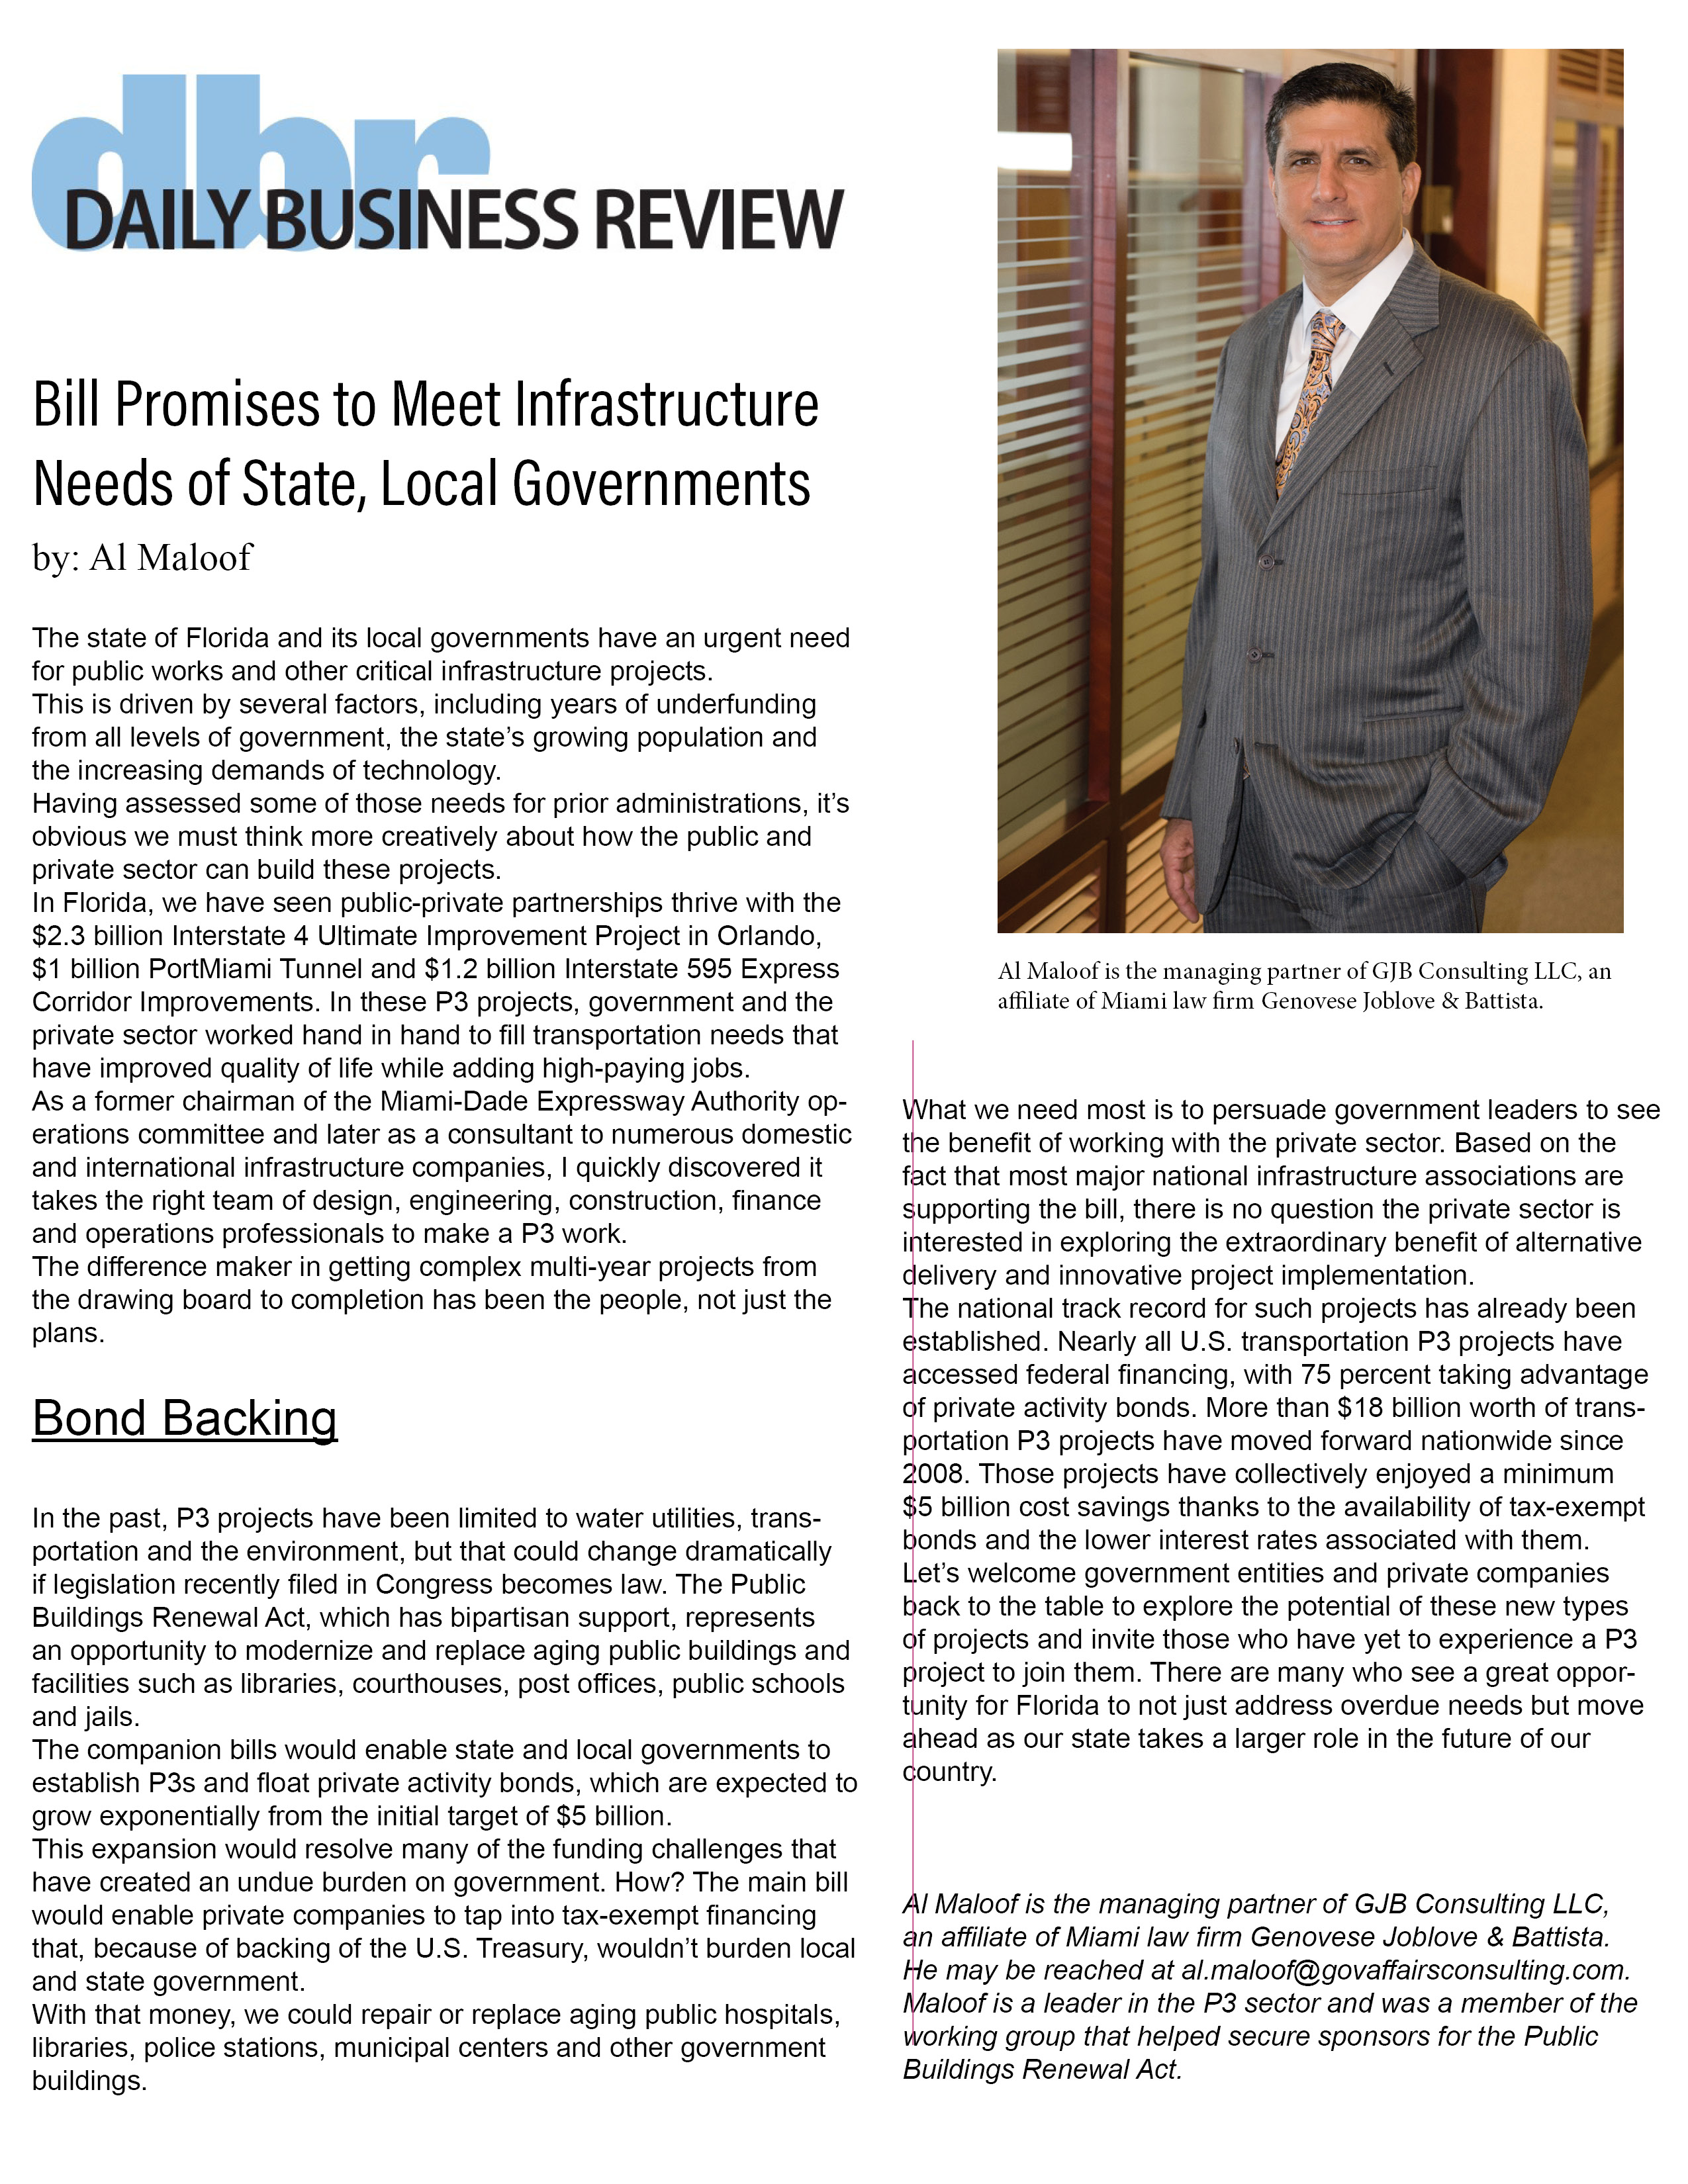 Congress is considering legislation that would enable state and local governments issue private activity bonds with P3s. Al Maloof says that form of funding could open a flood of public works and civic projects. Read his opinion piece in the Daily Business Review.